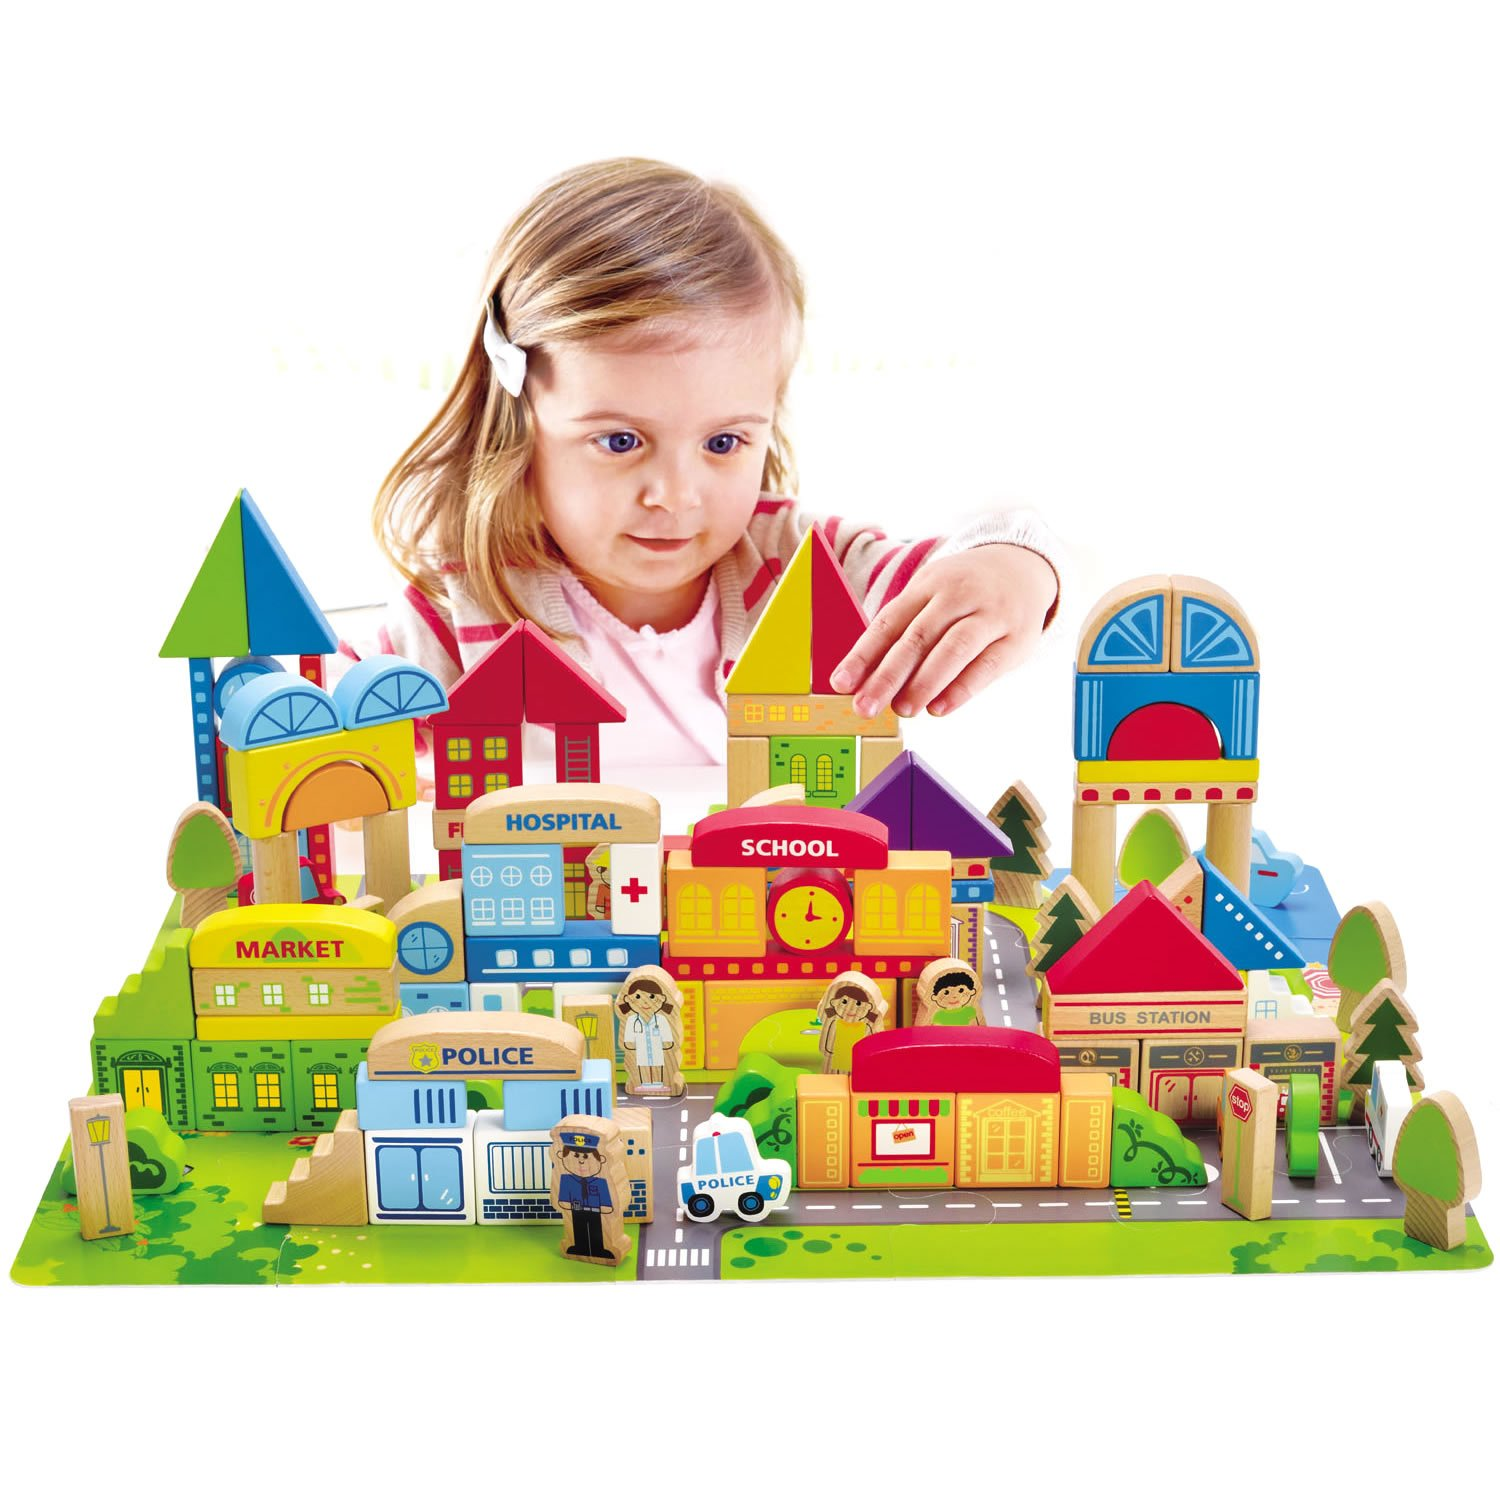 Hape - City Building Blocks With Playscape (Amazon Exclusive) 16